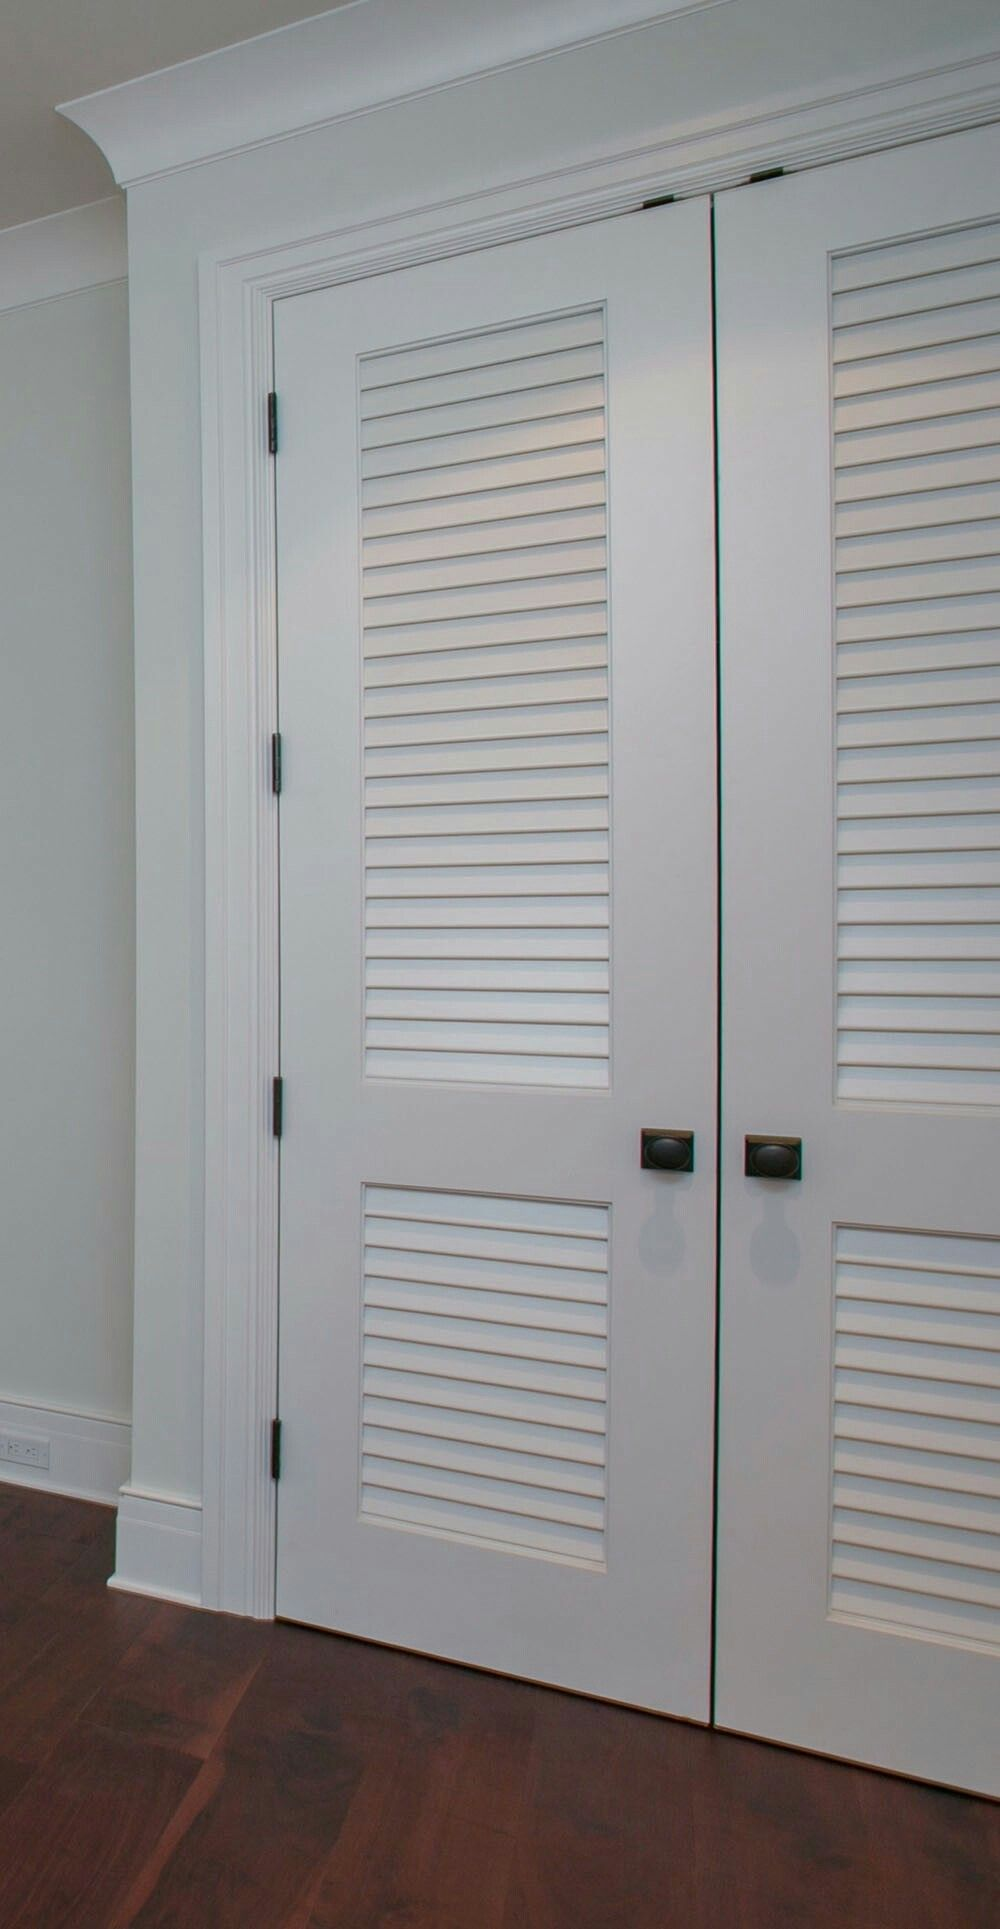 Basement Louvered Door Ventilation From Playroom To Laundry